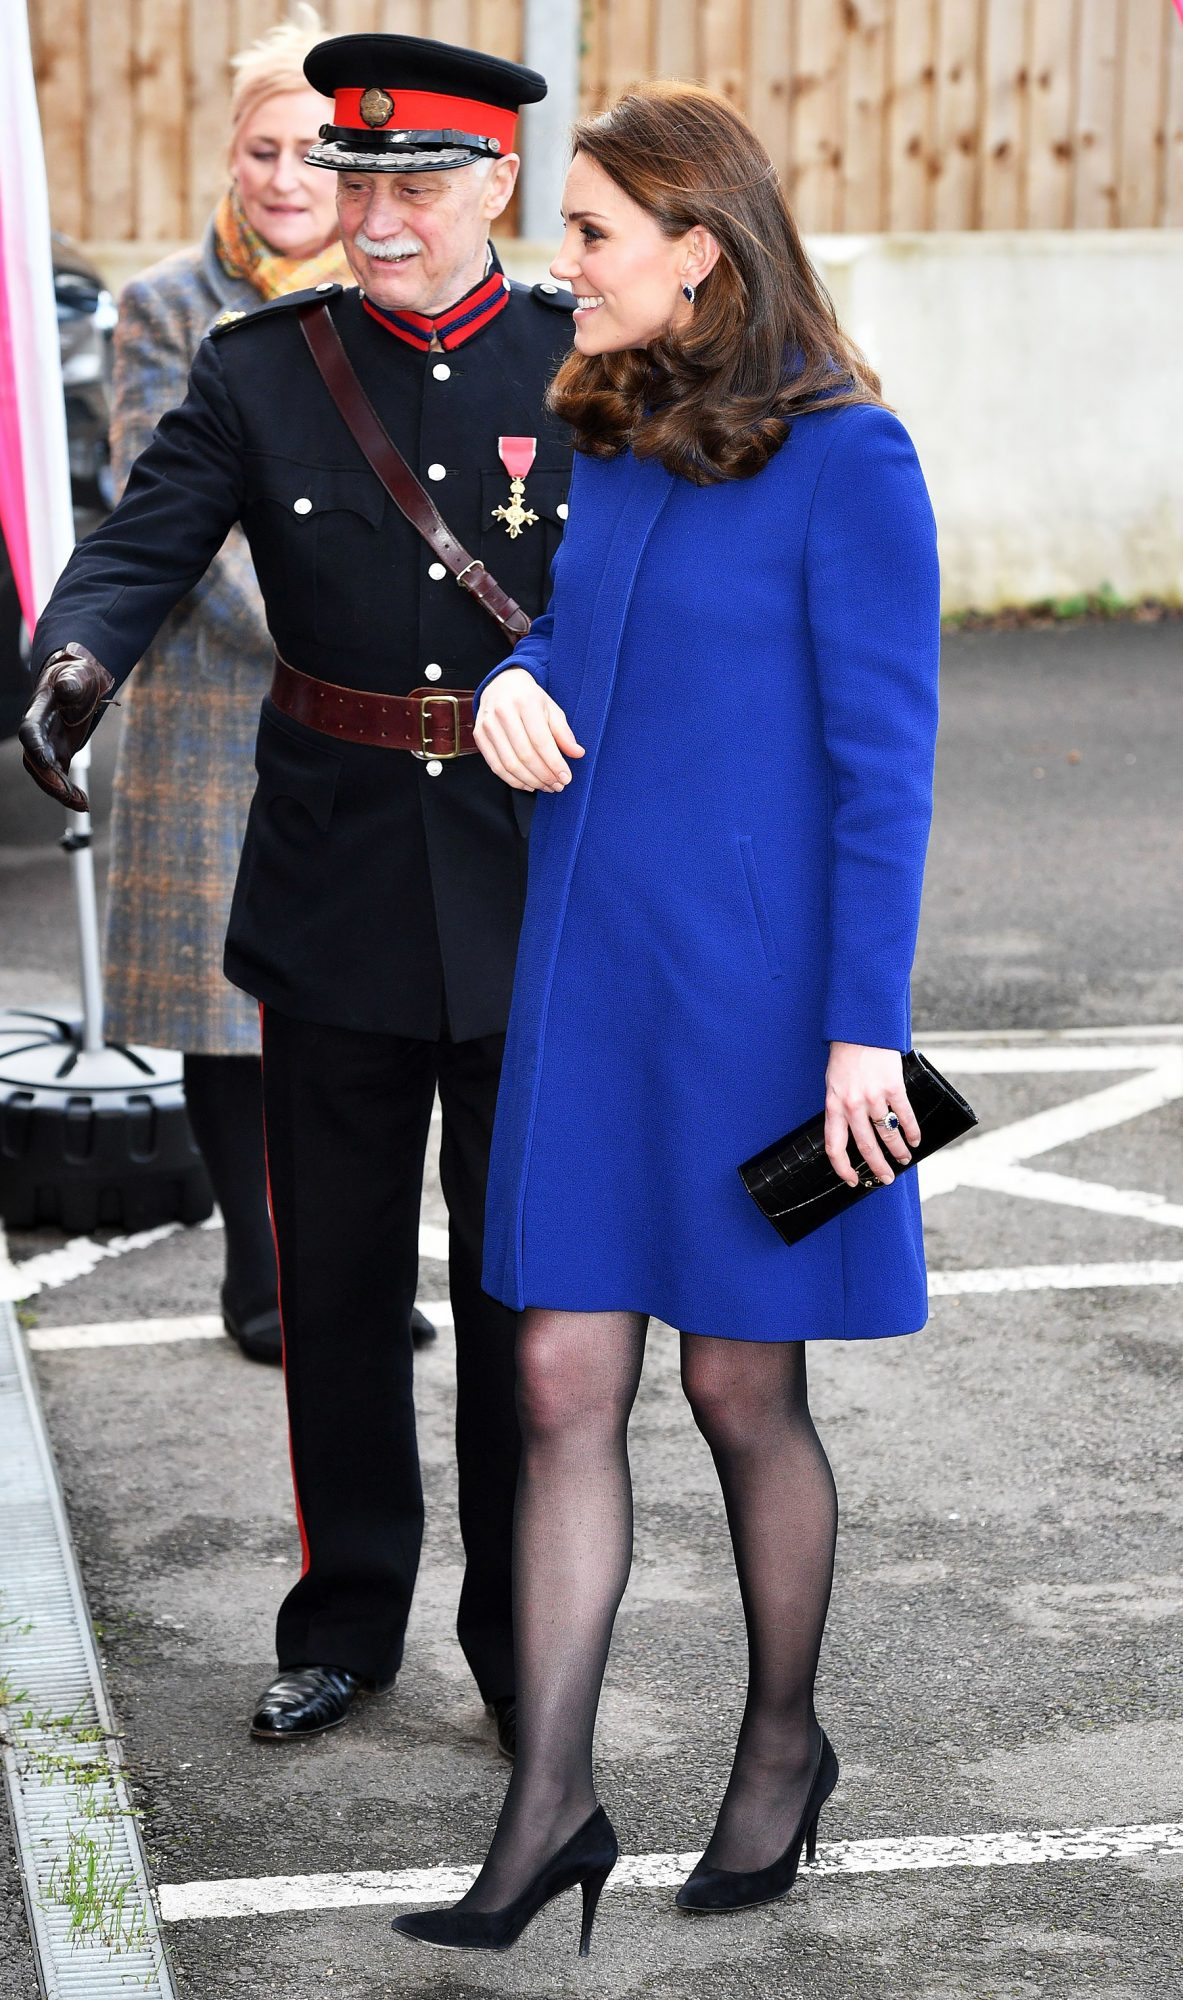 Catherine Duchess of Cambridge visits an Action on Addiction Community Treatment Centre, Wickford, Essex - 07 Feb 2018